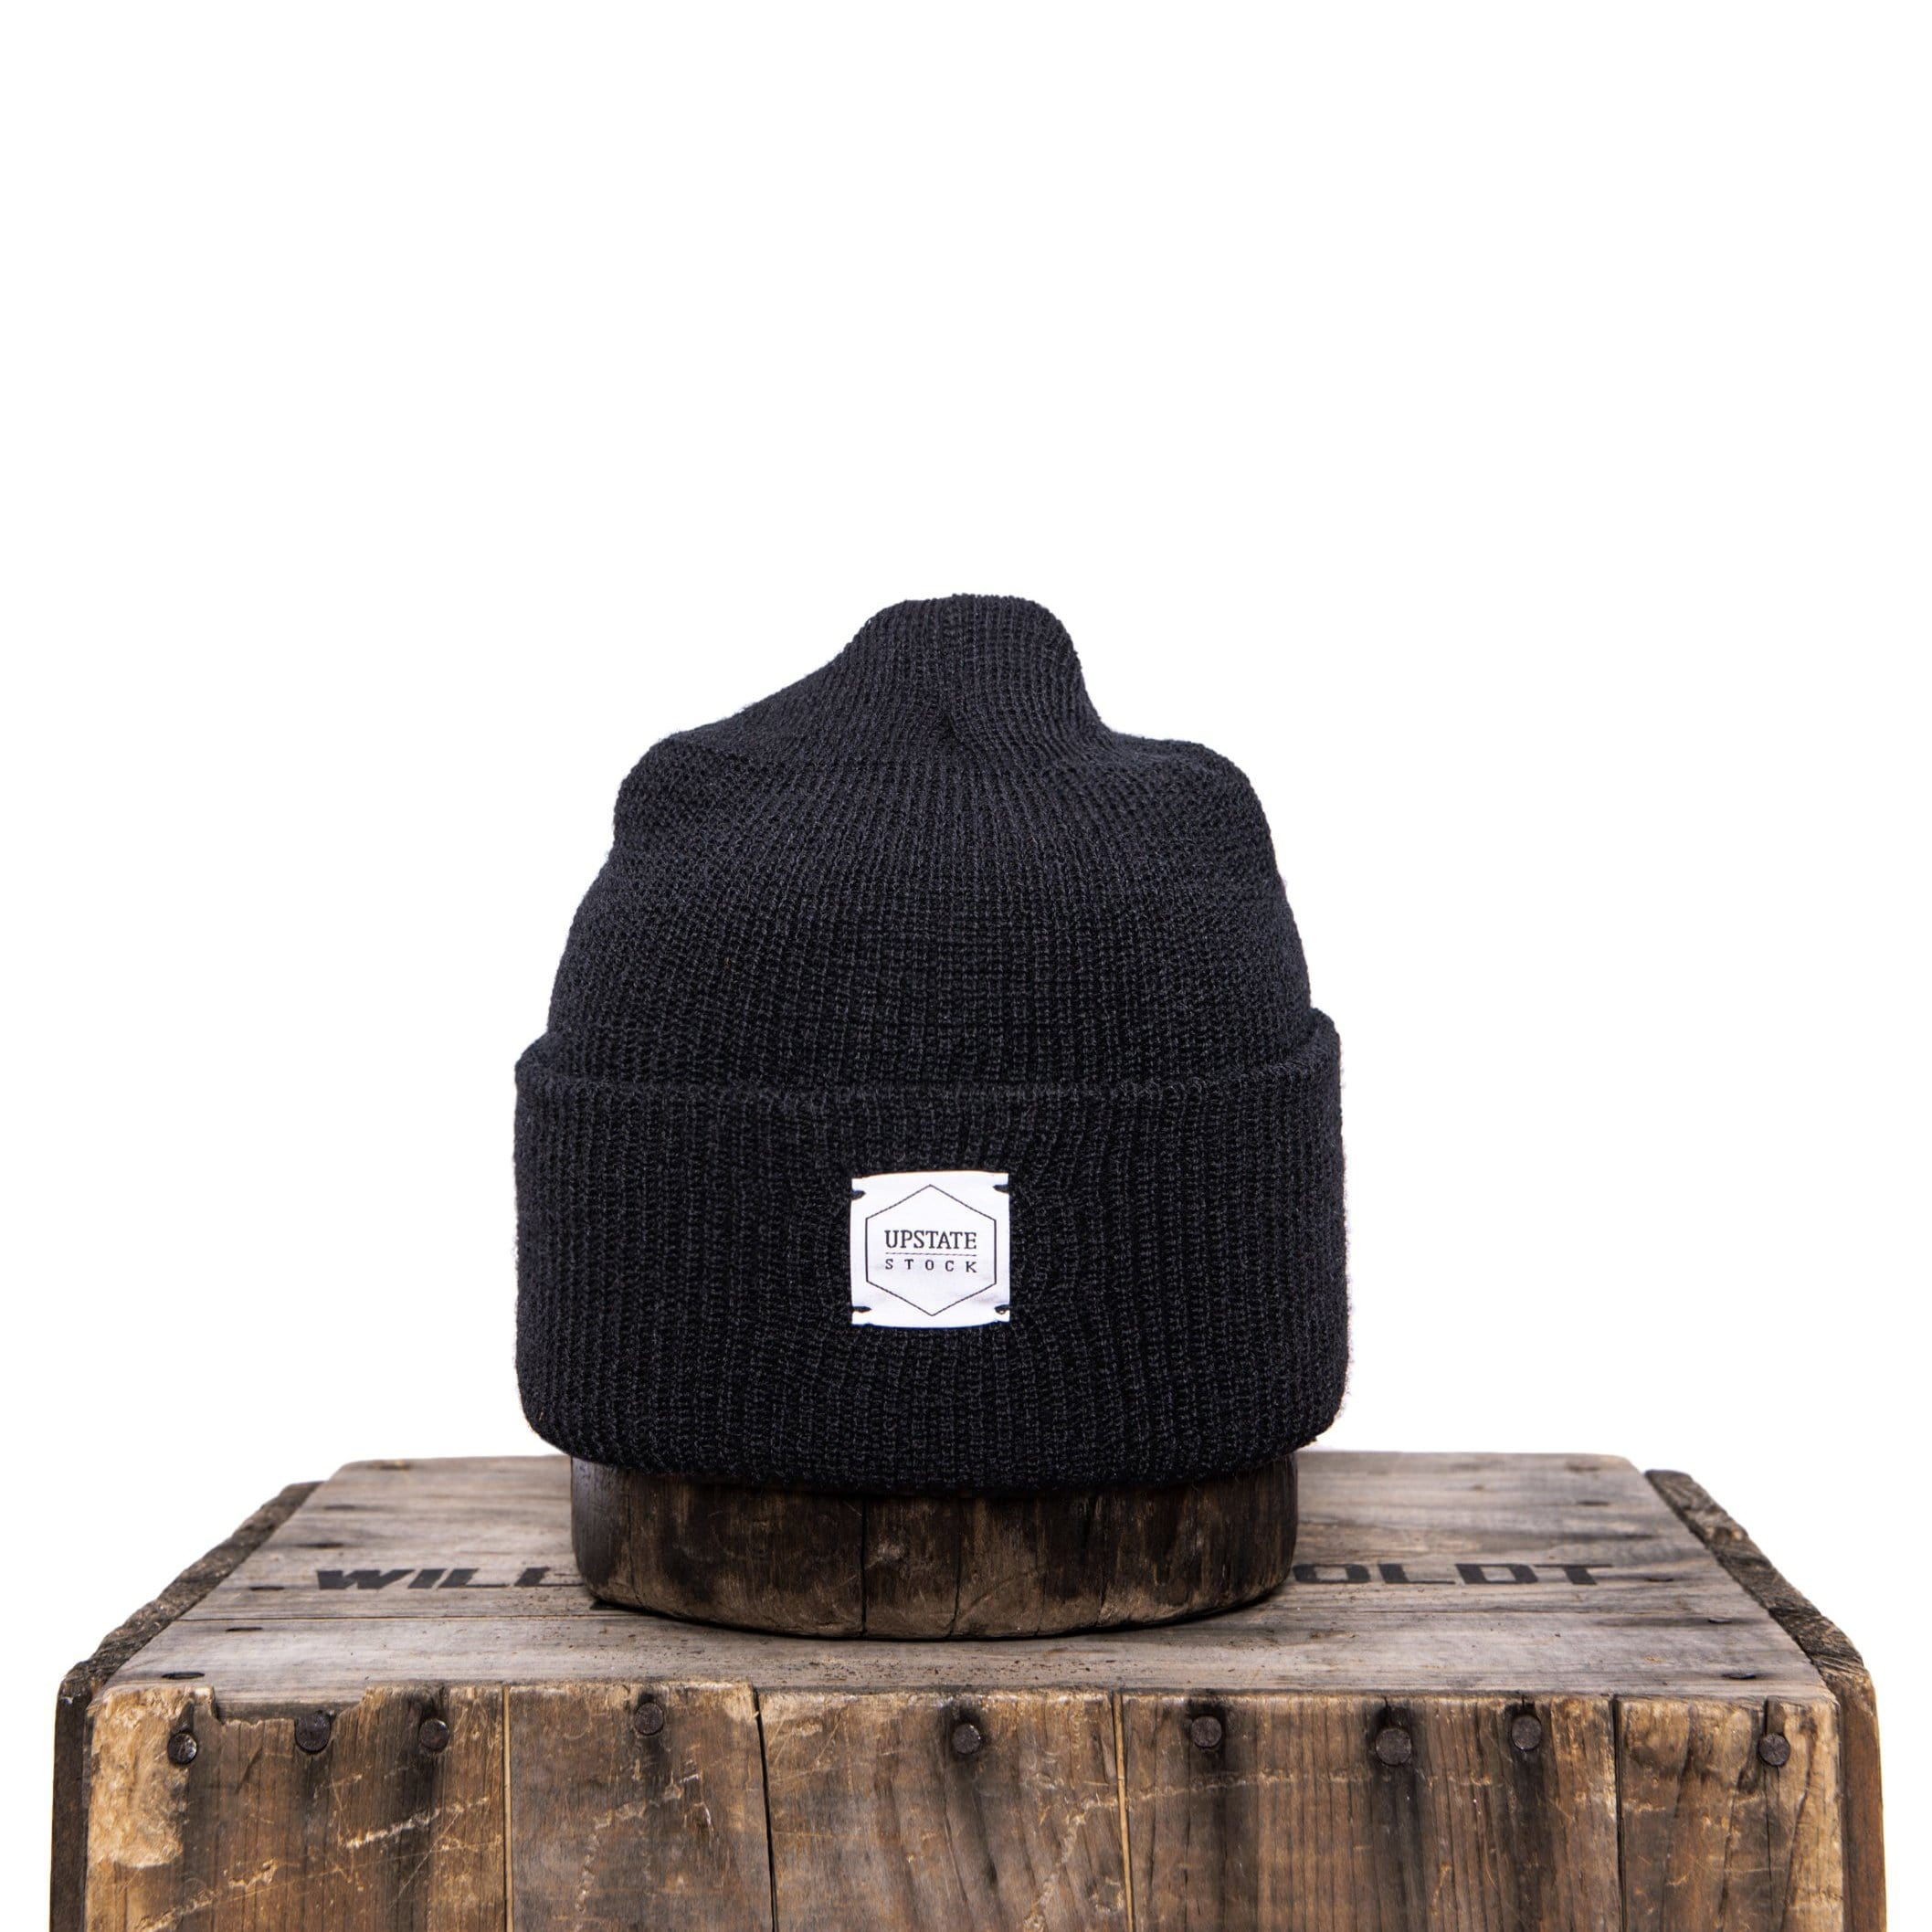 Upstate Stock - 100% Wool Watchcap - Black